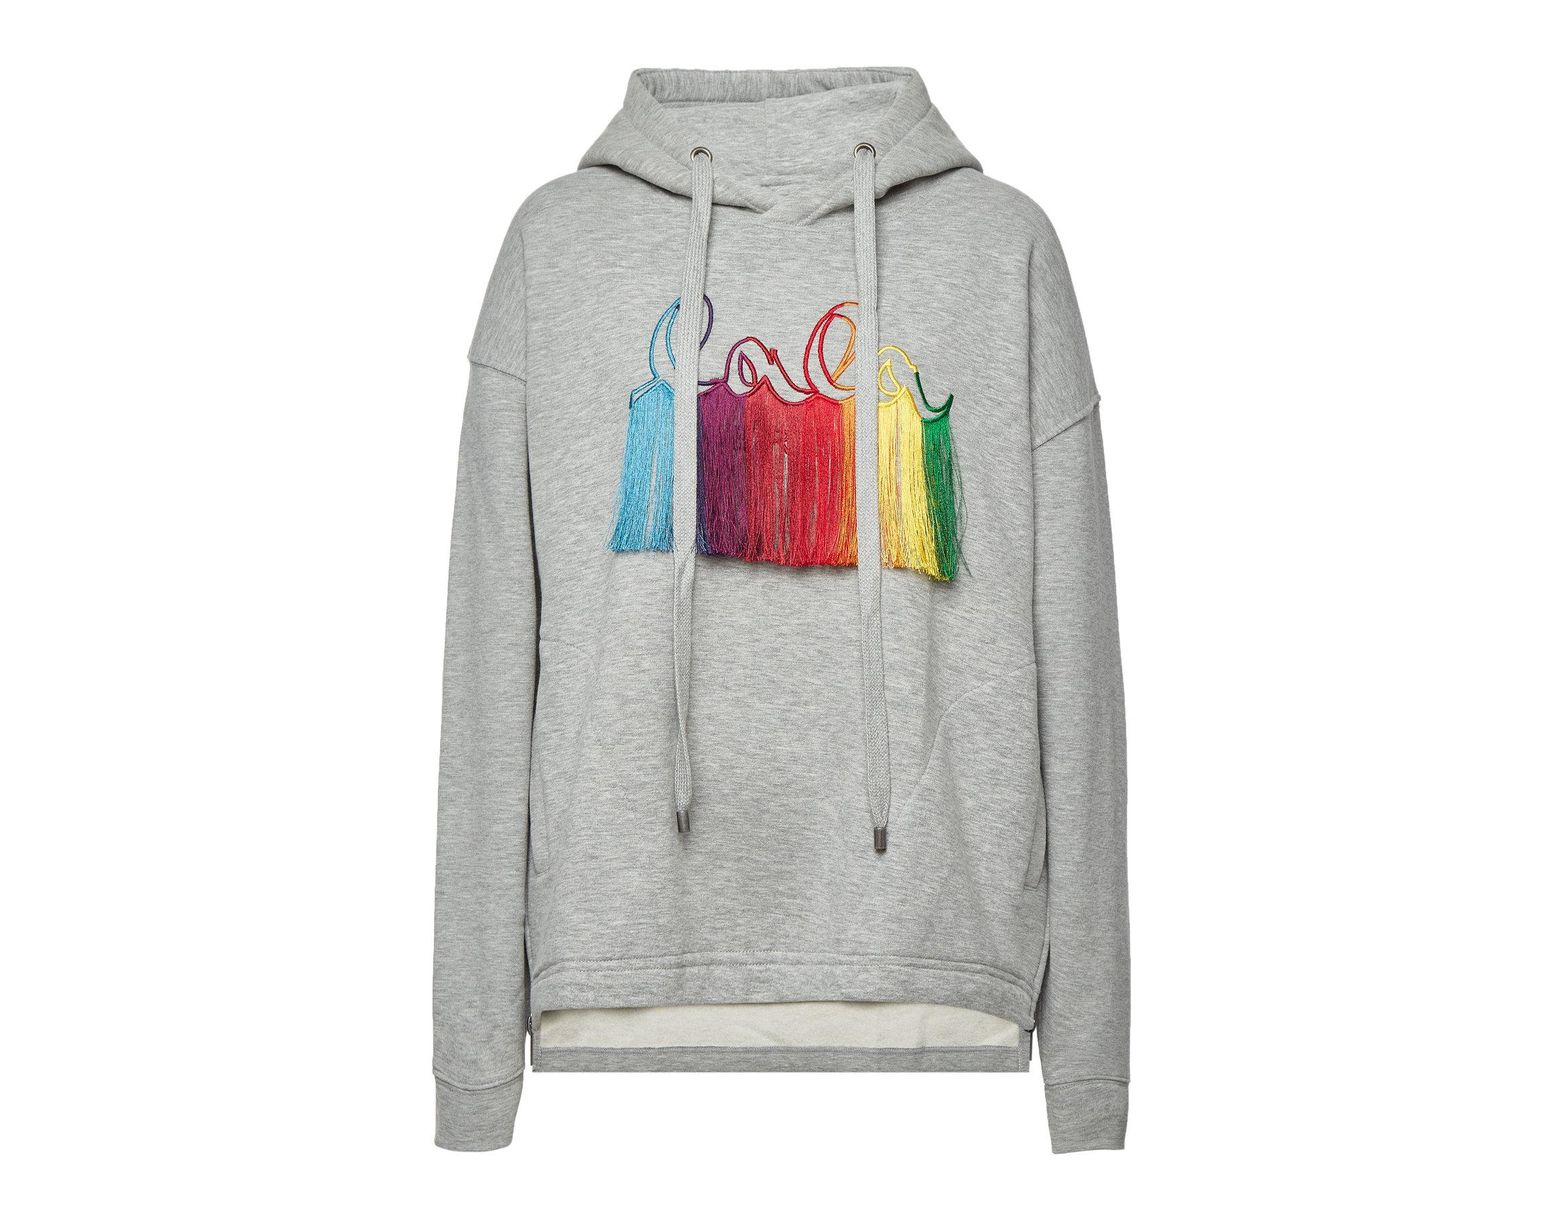 f93a58f043b Lala Berlin Quinn Rainbow Embroidered Cotton Hoody in Gray - Lyst